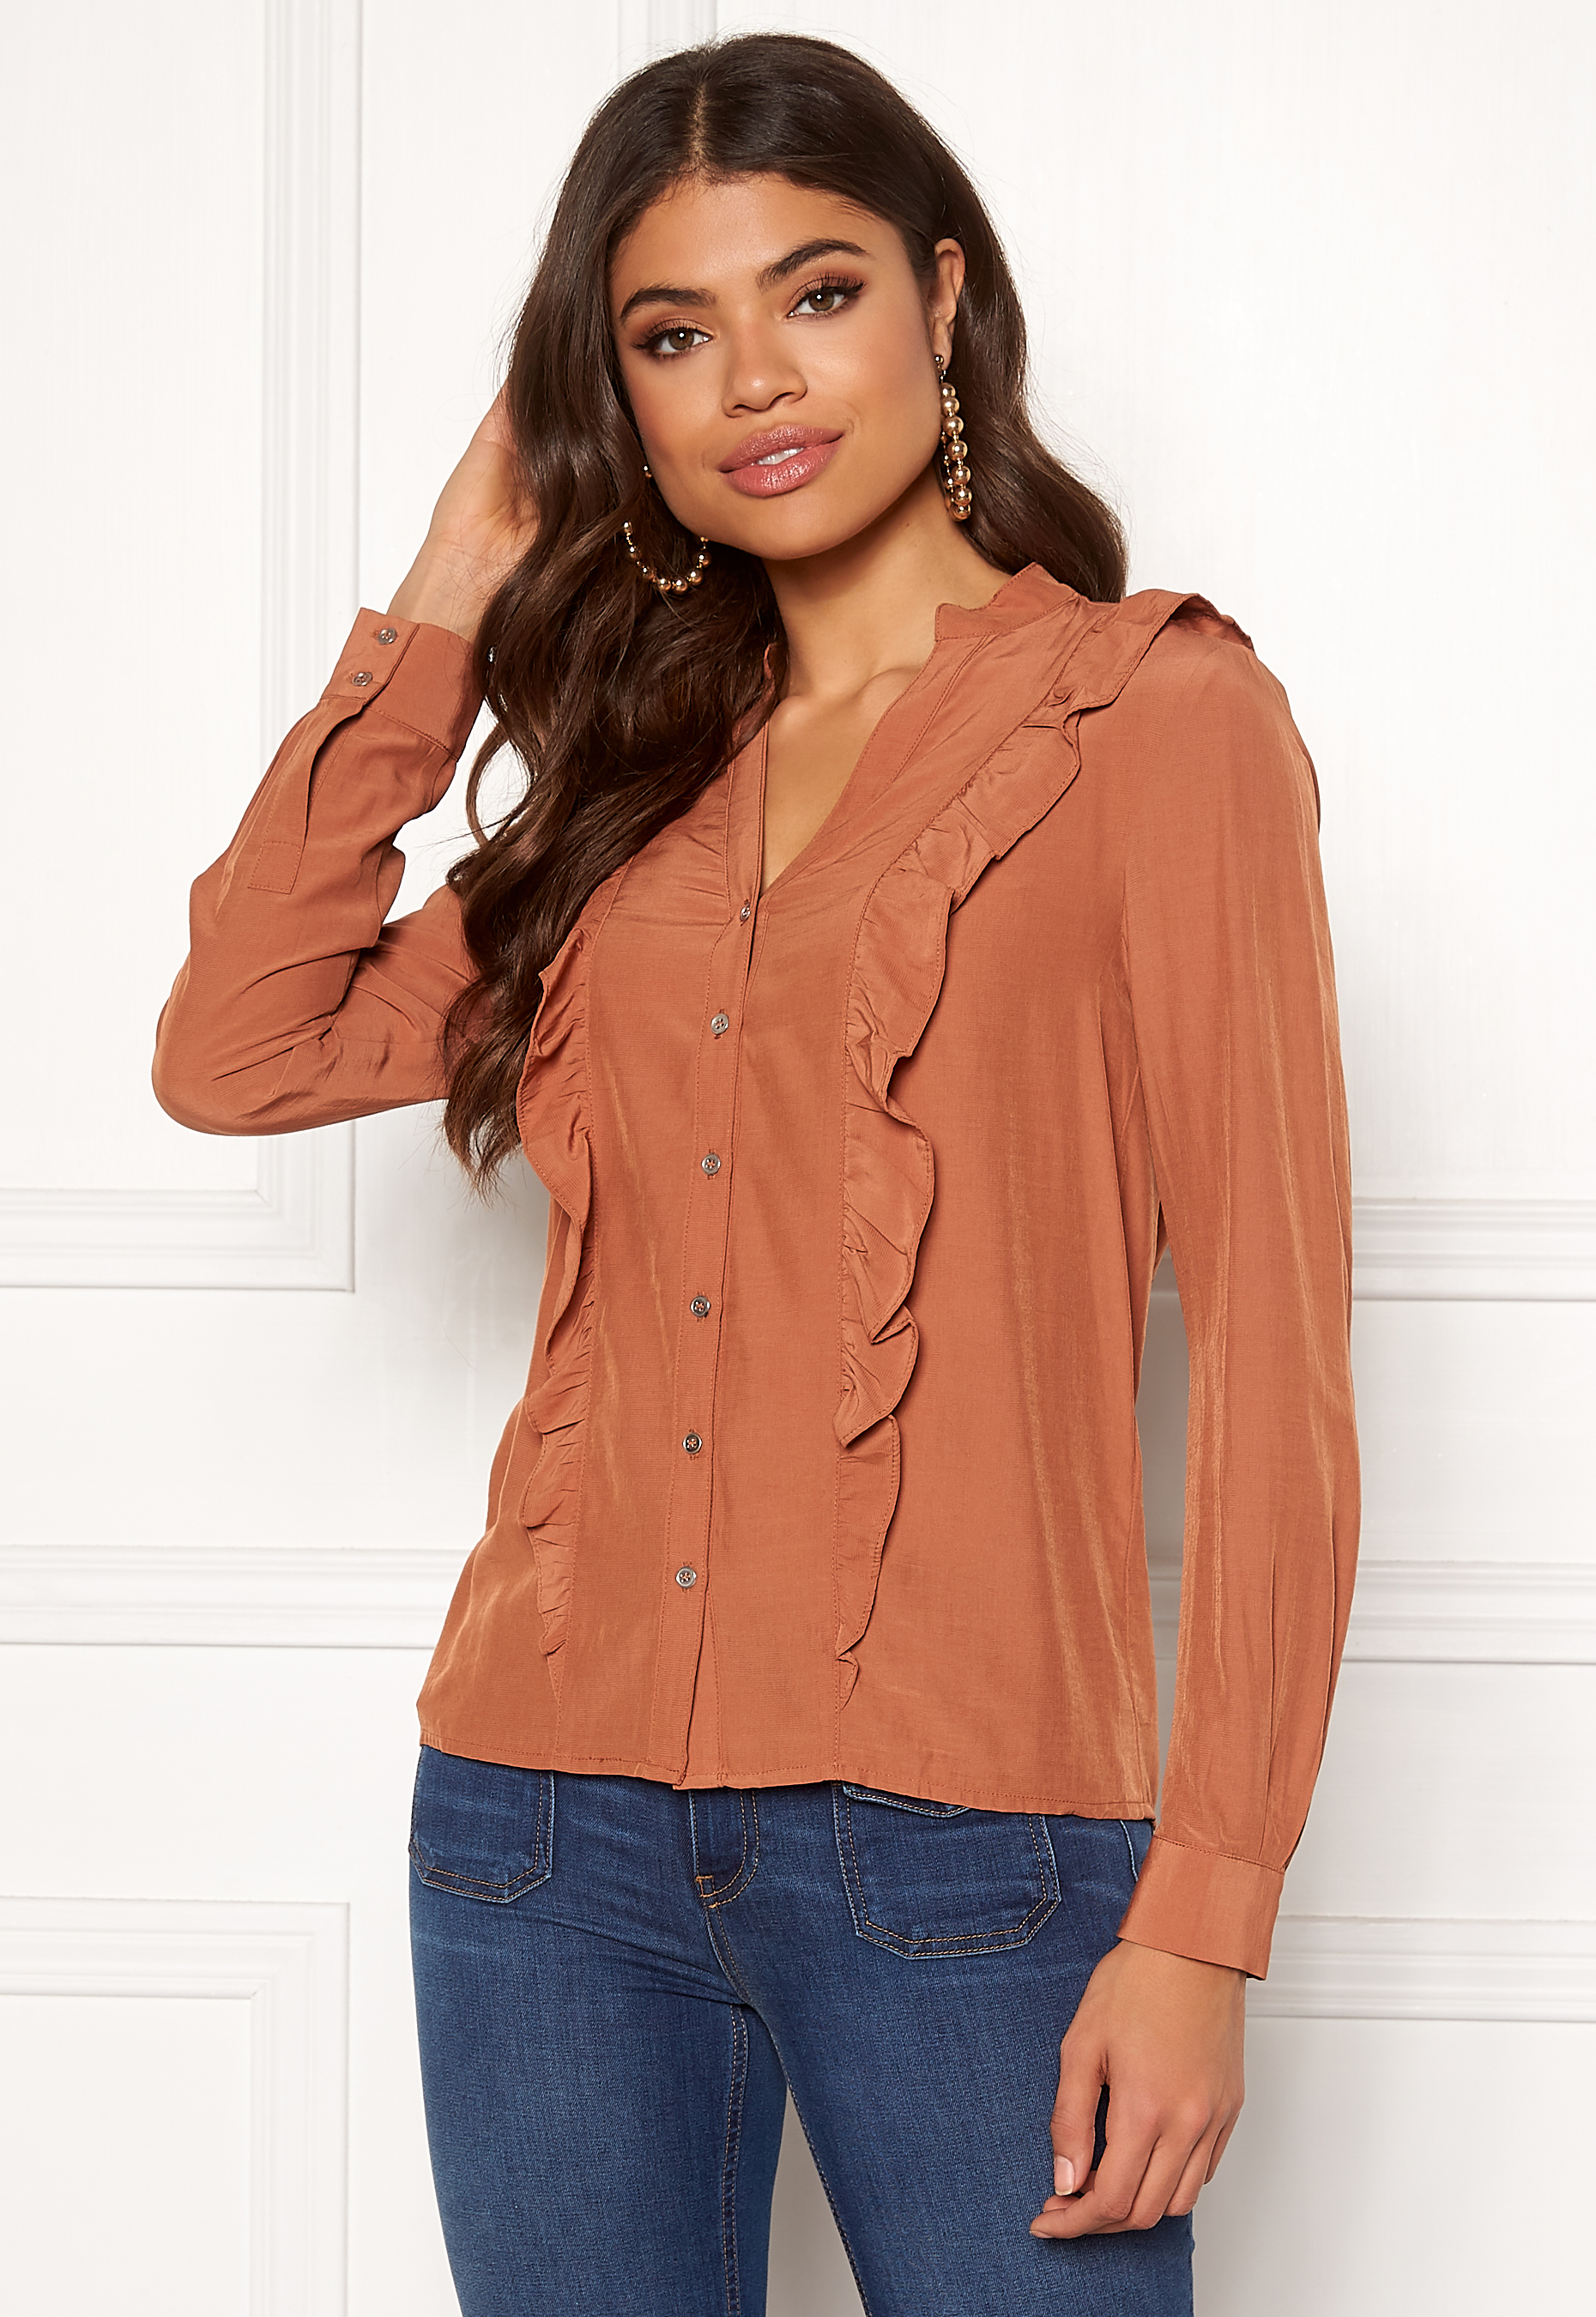 50f19009 co'couture Florence Frill Shirt Peach Skin - Bubbleroom